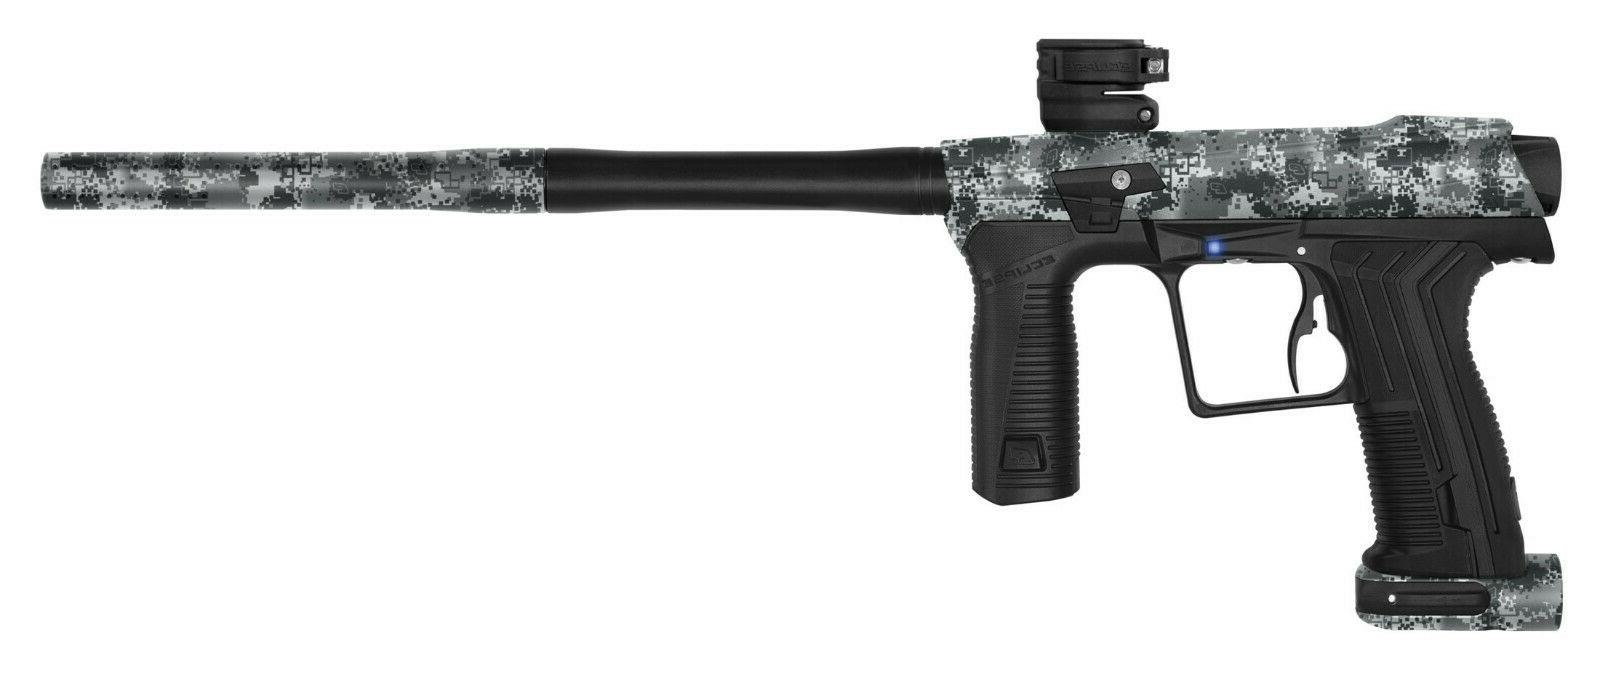 etha2 paintball marker